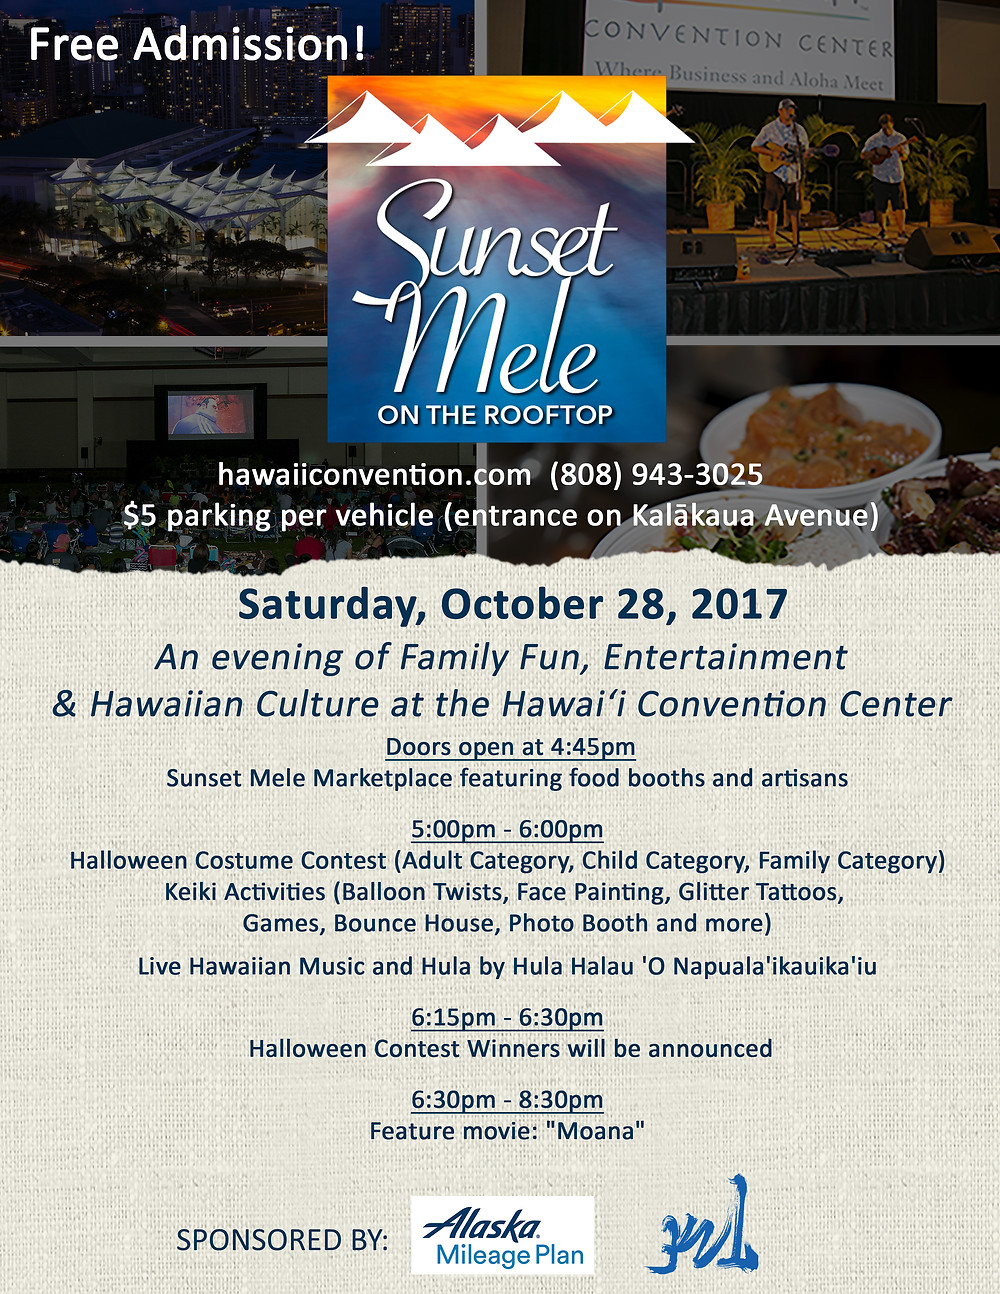 Sunset Mele October 28, Sat. at Hawaii Convention Center. Please contact ASAP.